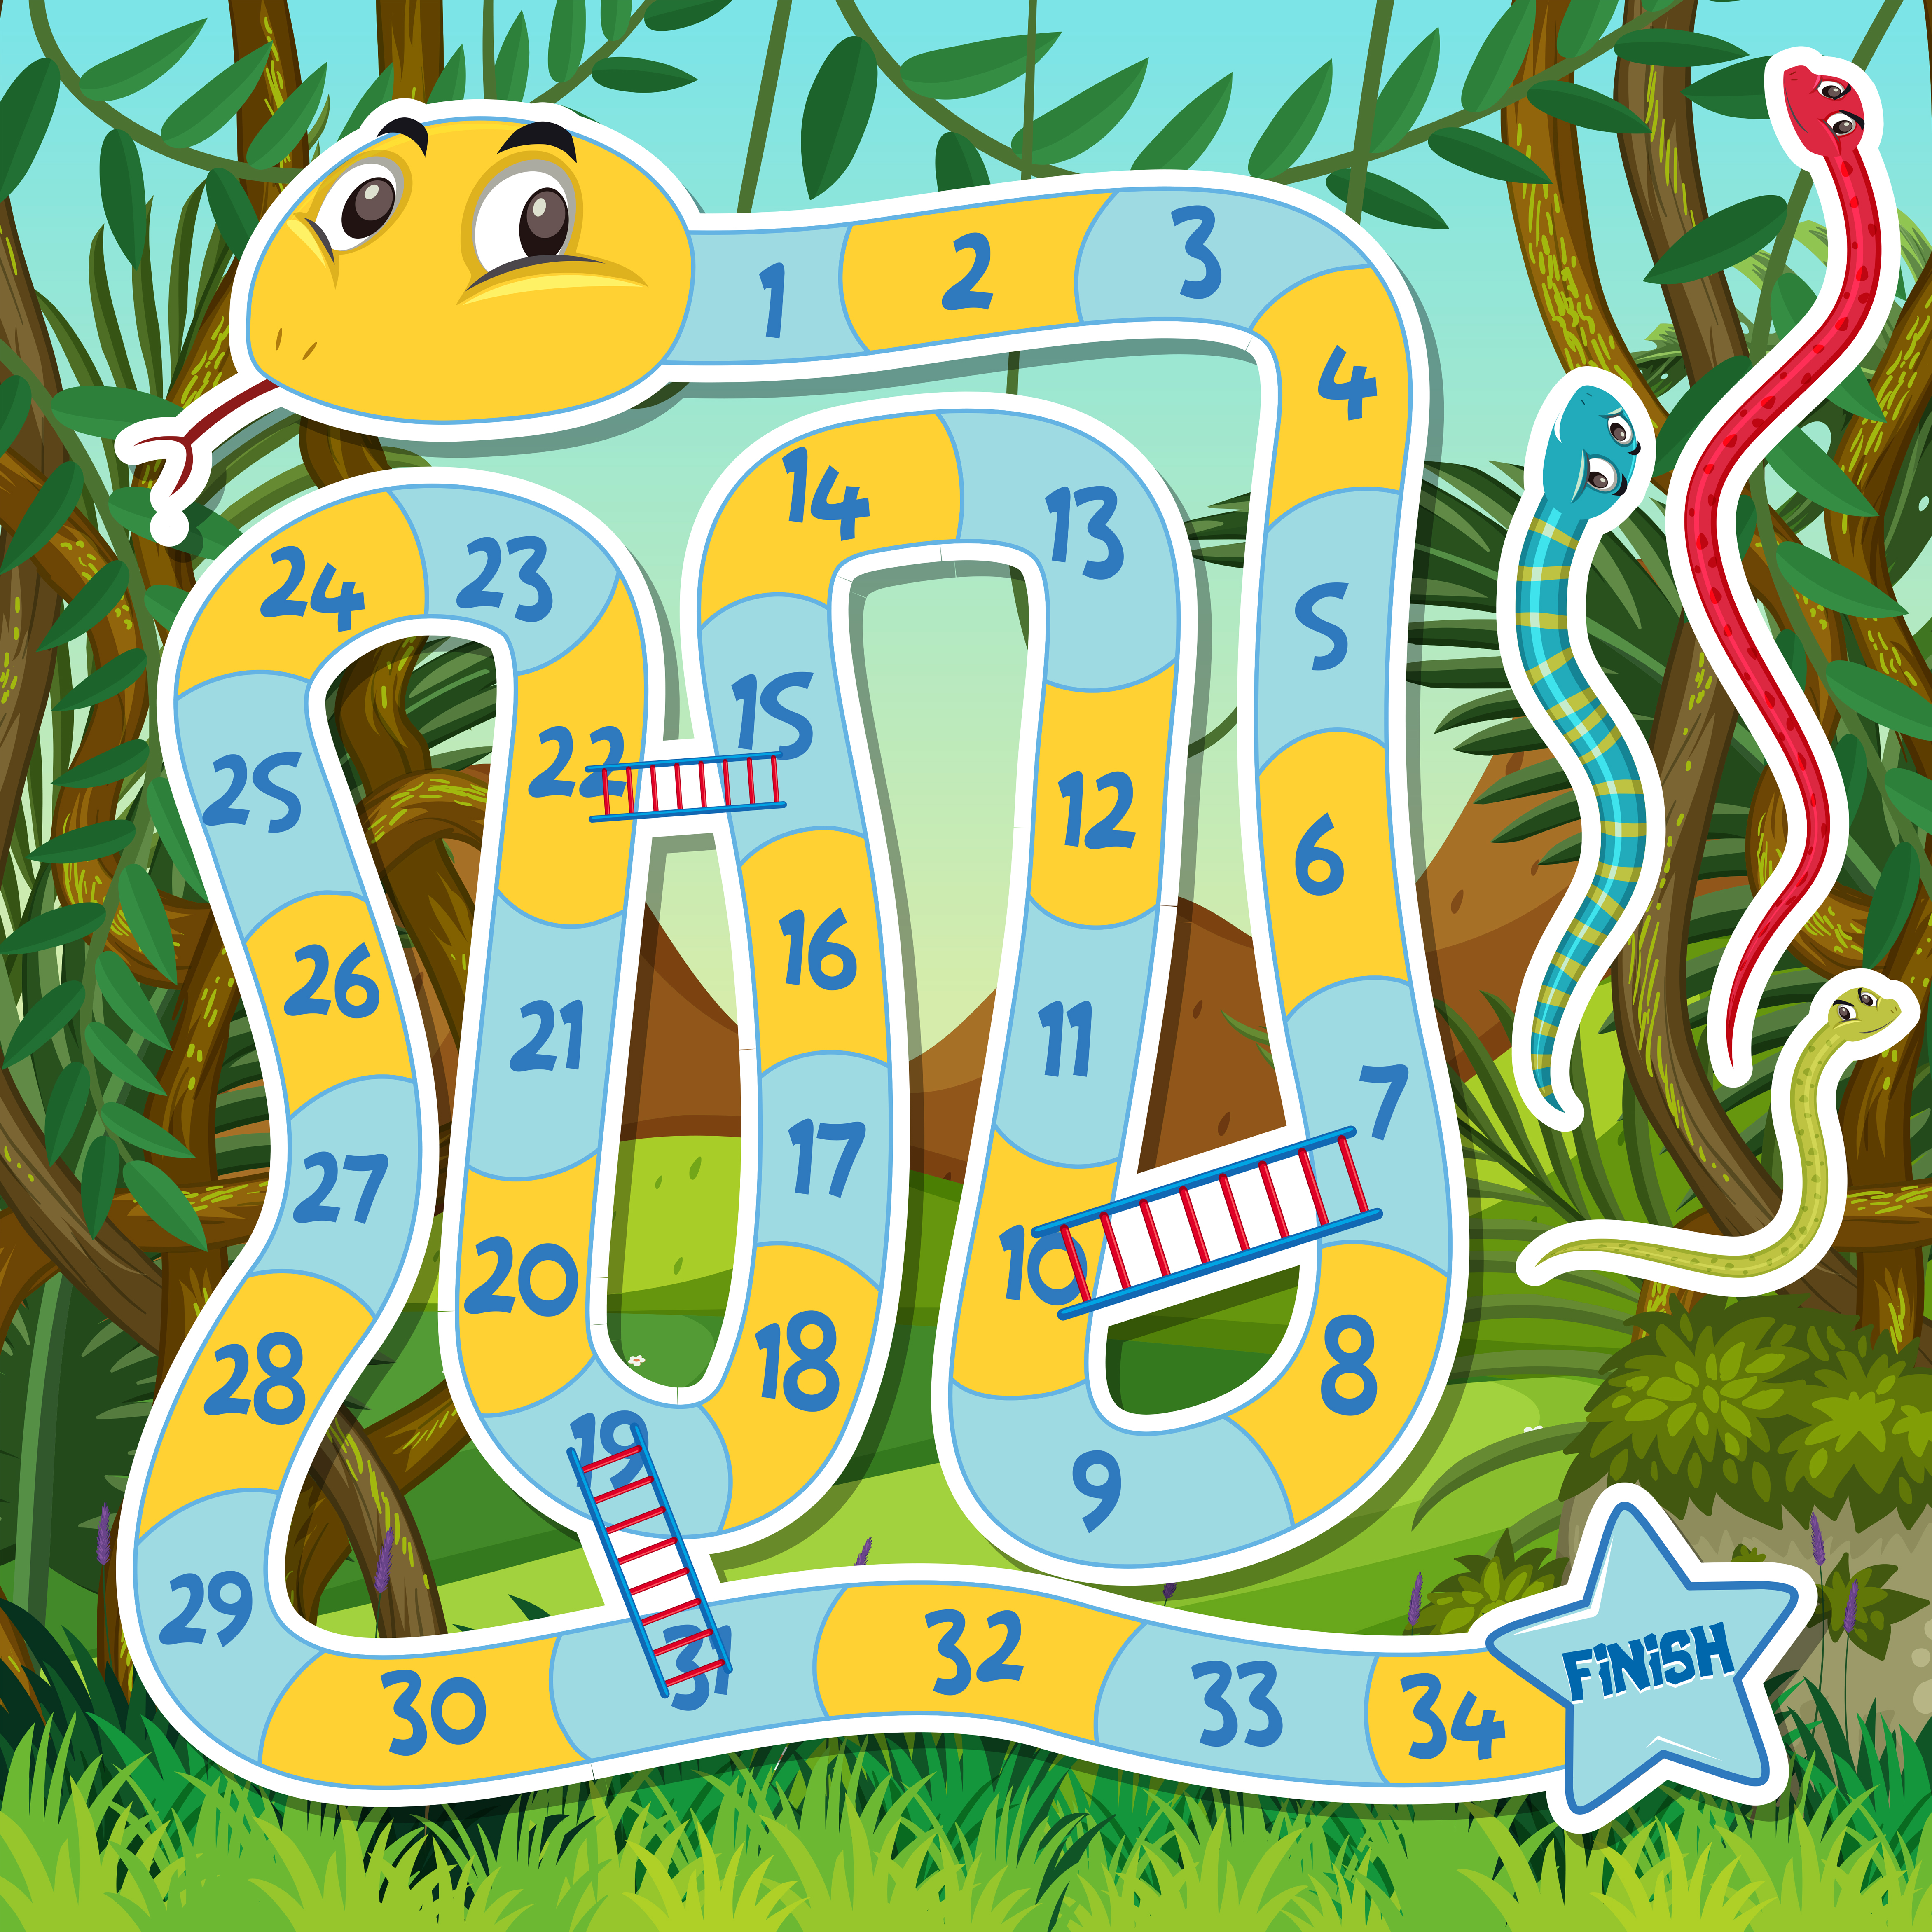 Printable Snakes and Ladders Game   Snakes and ladders, Ladders game, Snakes  and ladders printable